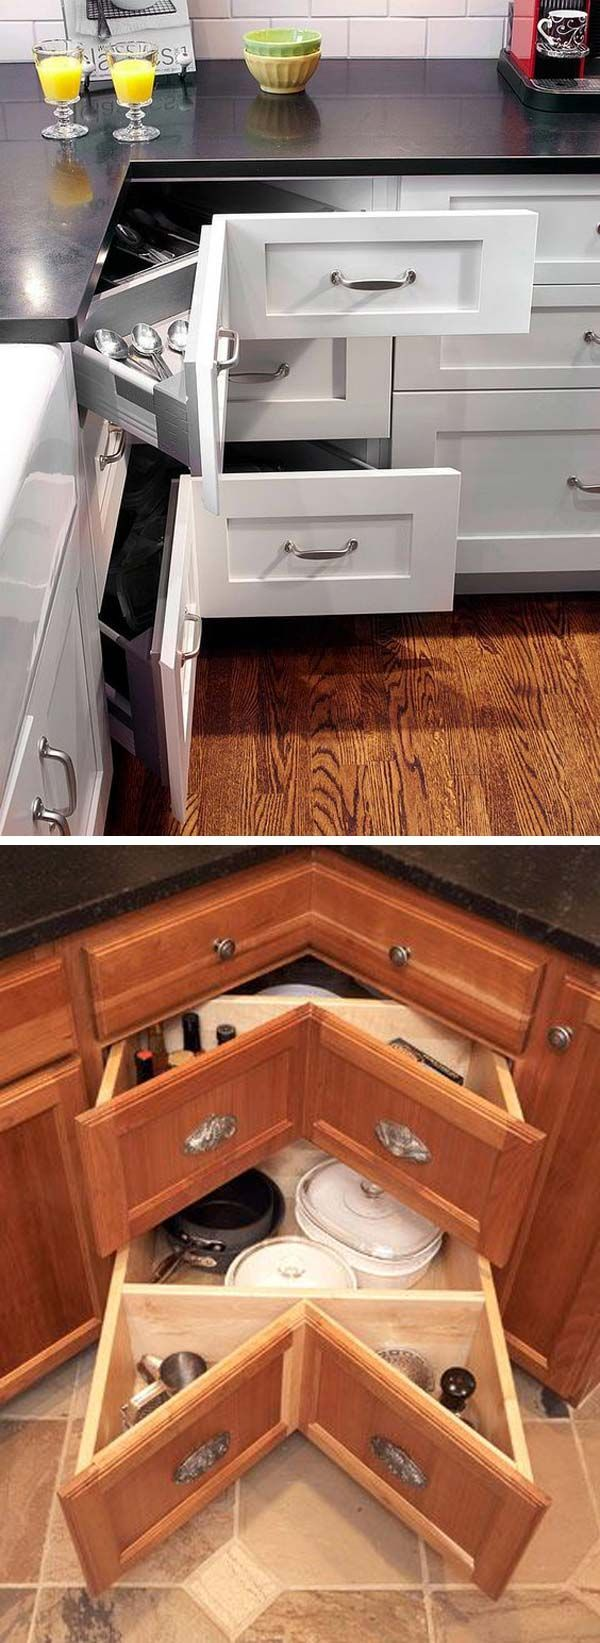 A 45-degree-angled stack of drawers work well in awkward kitchen spaces like corner cabinets